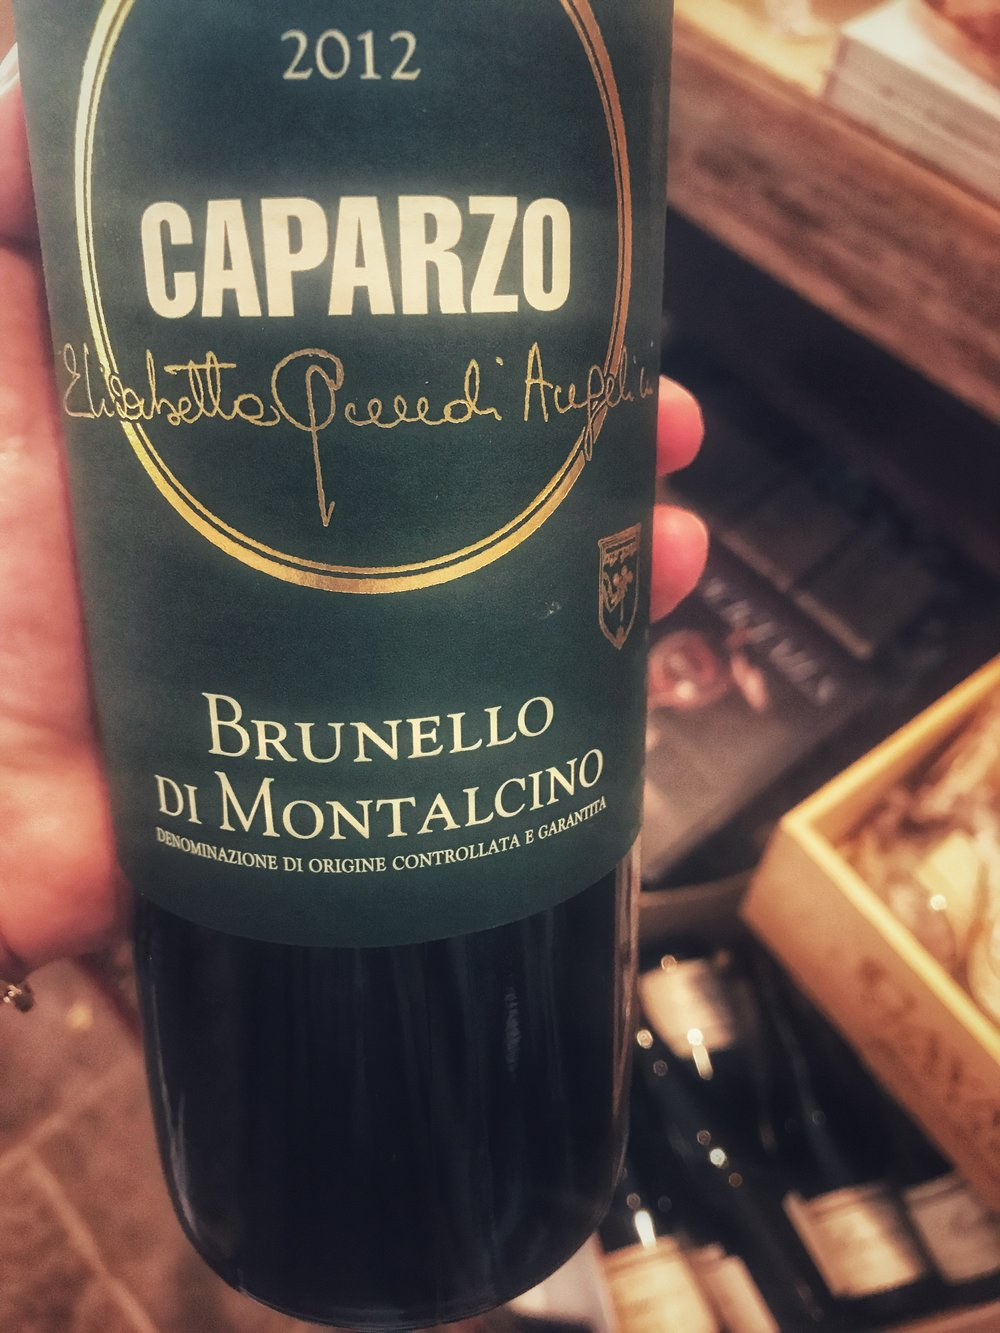 2012 Caparzo Brunello di Montalcino - $47.99 Critical Acclaim92 Wine Spectator: This is round and laced with cherry, currant, tobacco and iron flavors. Firms up quickly, with a fine matrix of tannins for support. Balanced overall, with a long finish of tobacco and iron. Drink through 2033.